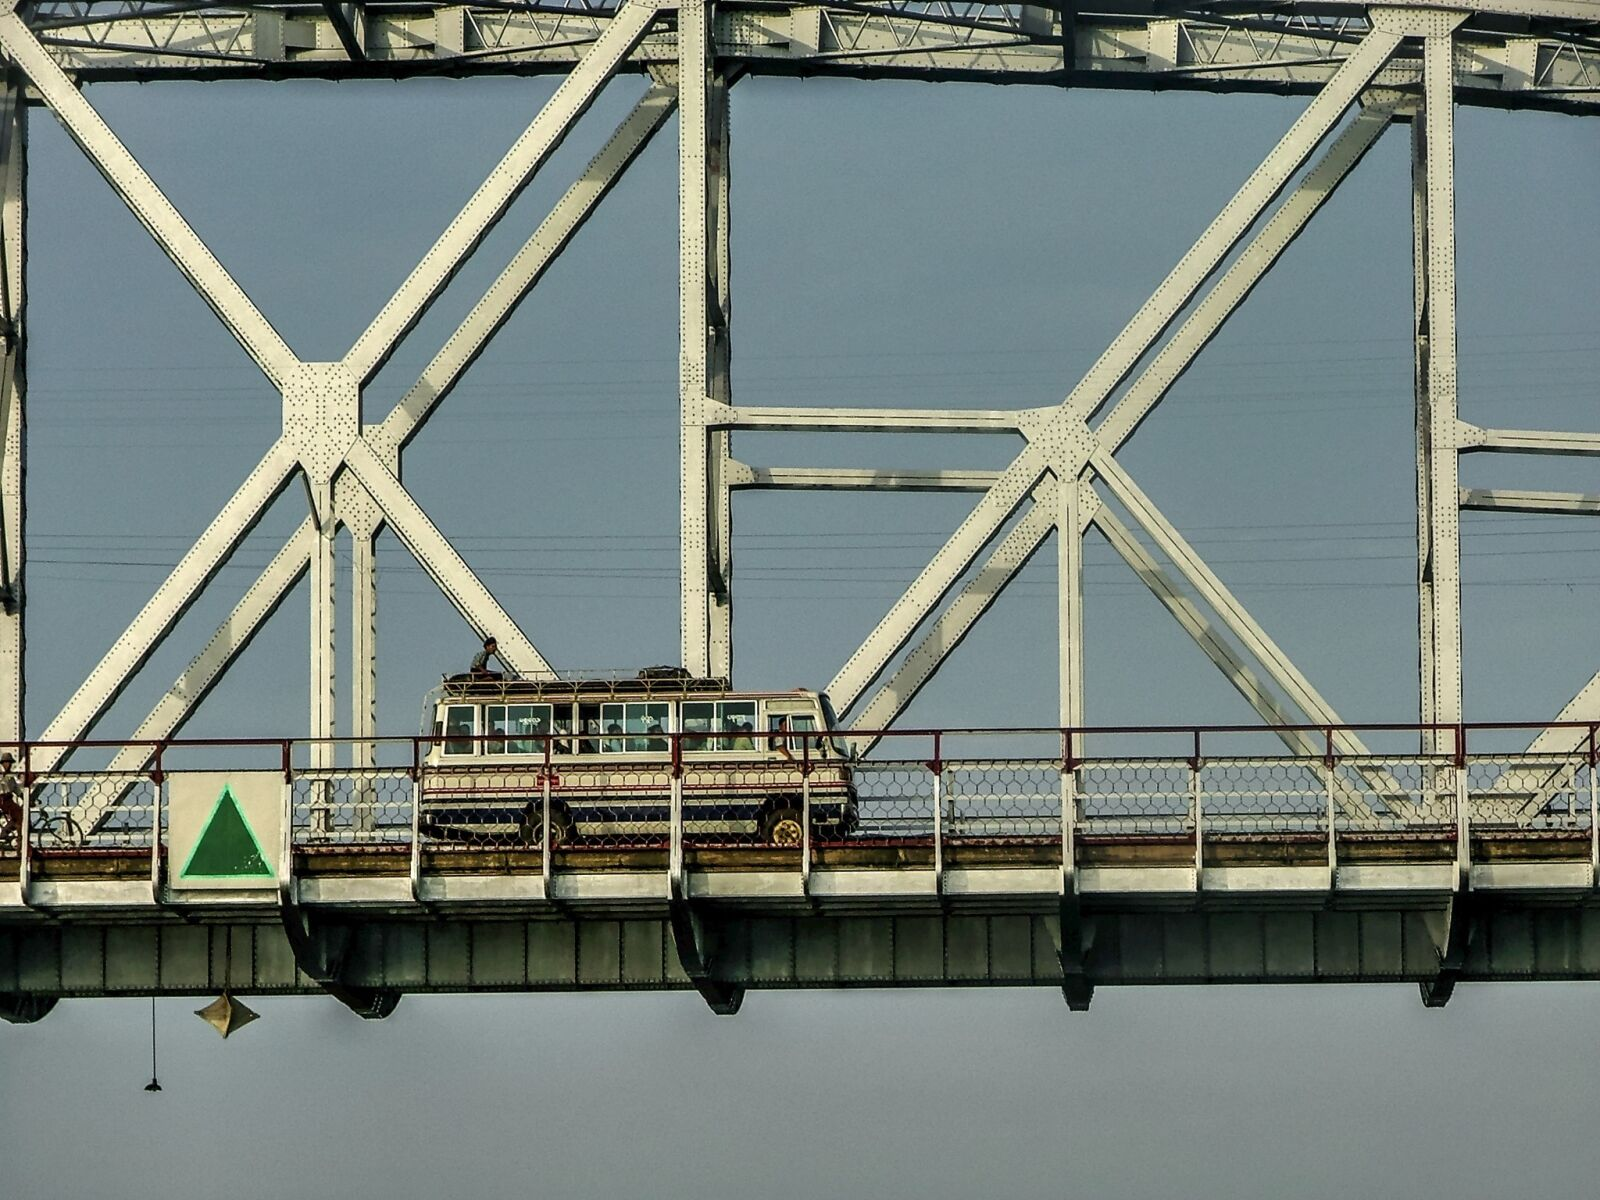 bus, bridge, coach